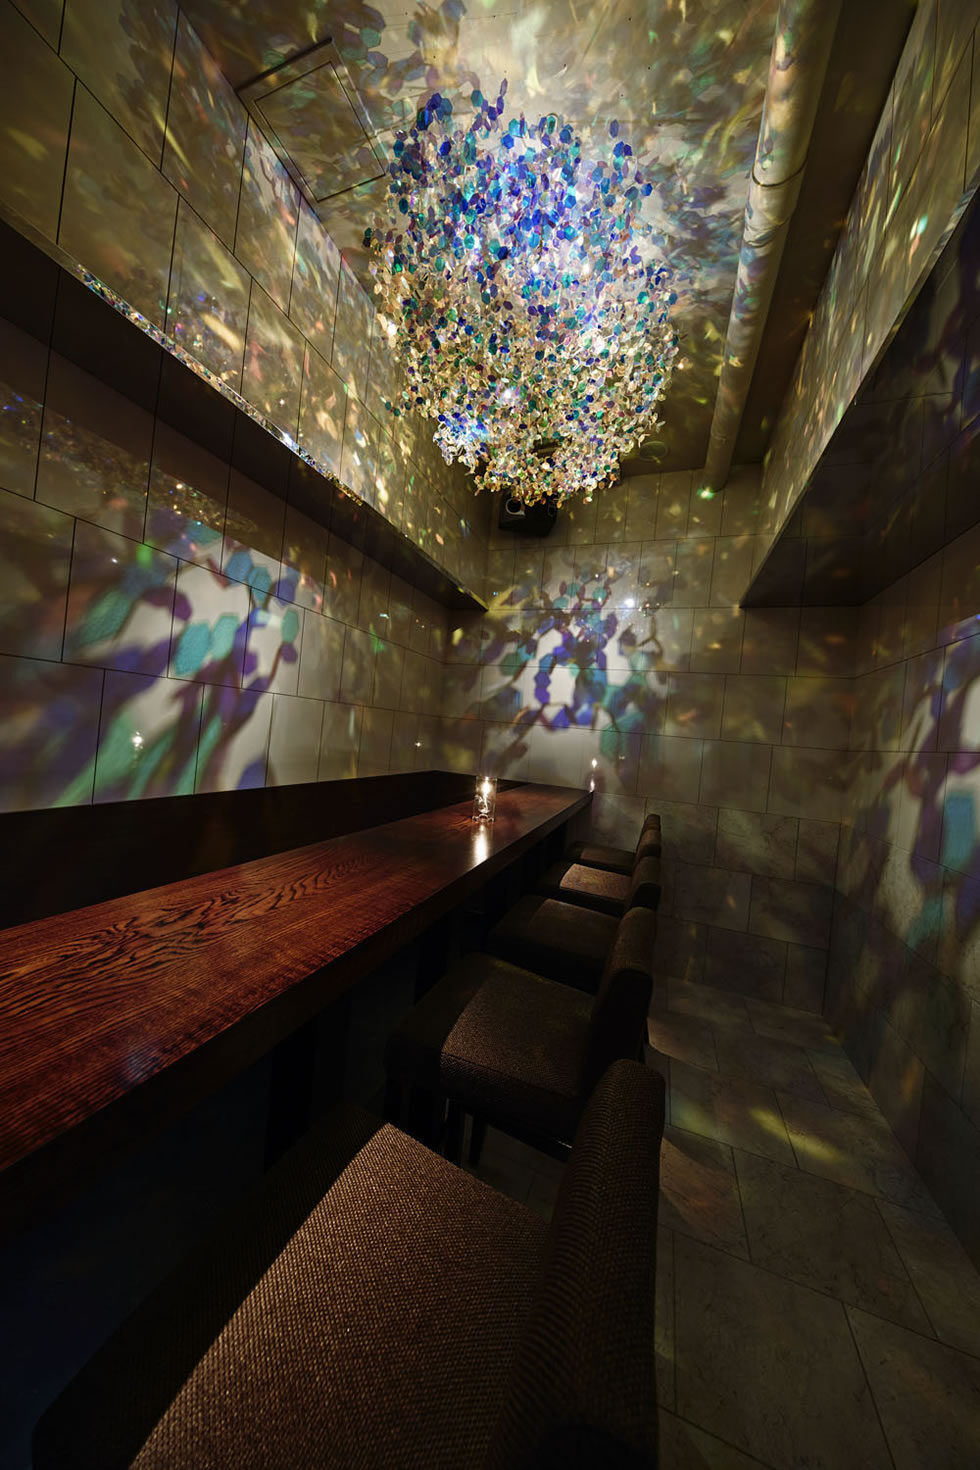 RICCA Bar Inspired by Hanami - Cherry Blossom Viewing (11)